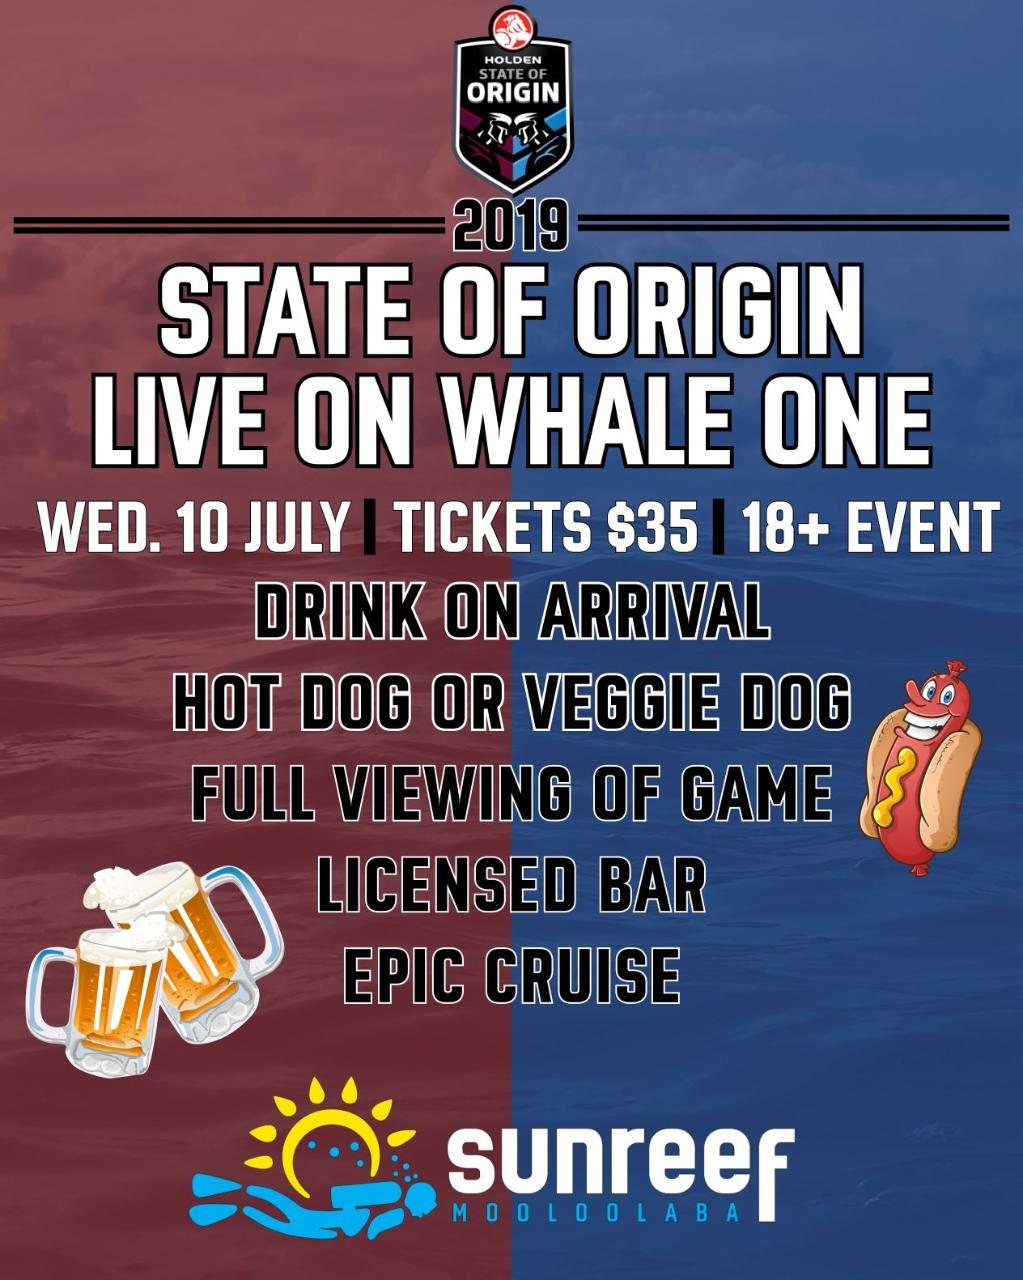 State of Origin on Whale One